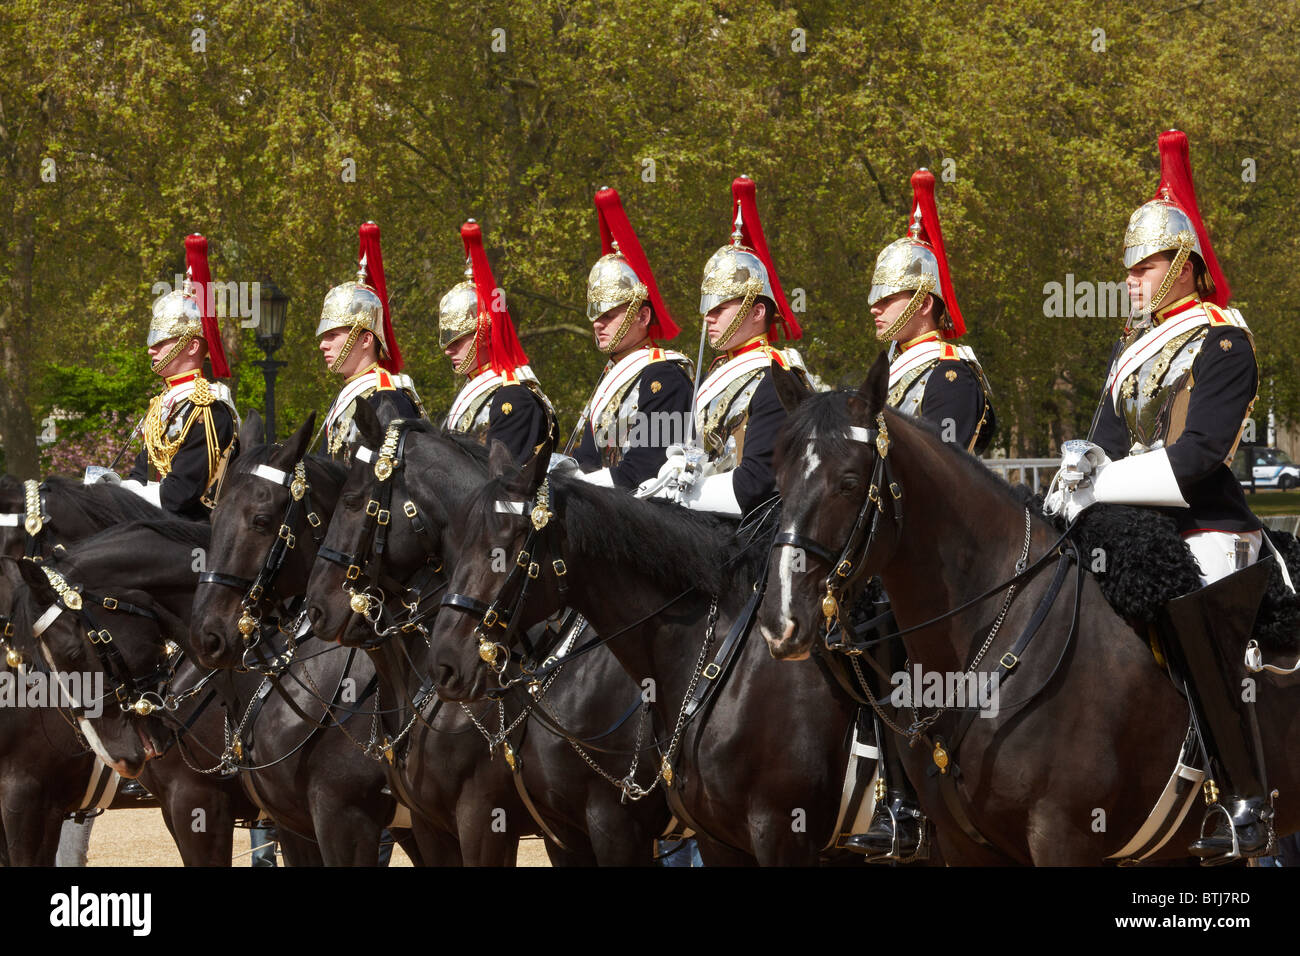 British Household Cavalry, Changing of the Horse Guards, Horse Guards, London, England, United Kingdom - Stock Image